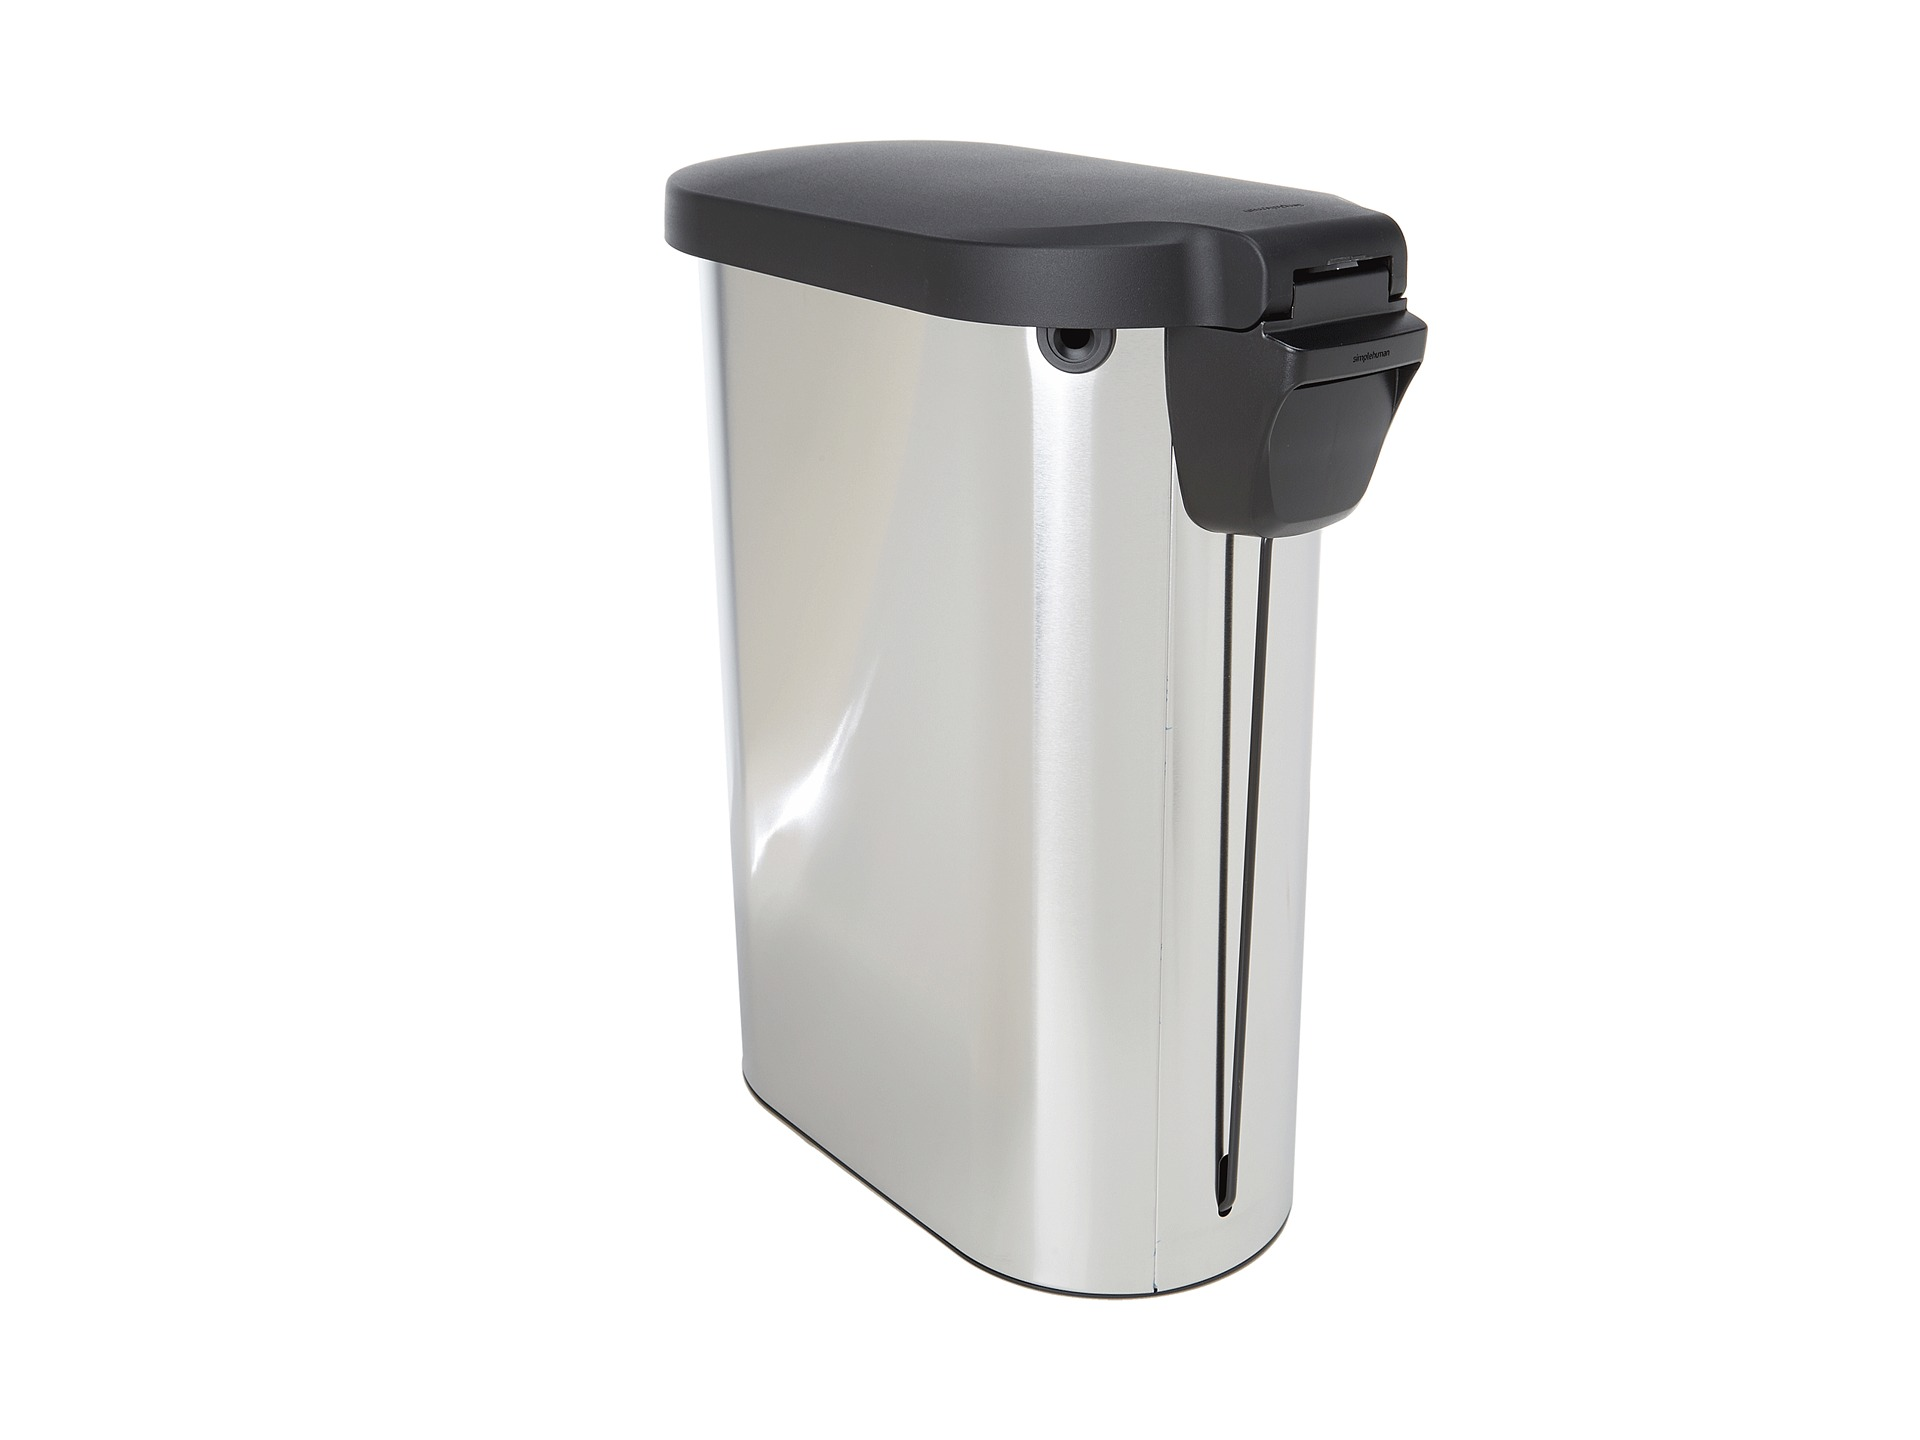 slim kitchen trash can home depot sinks stainless steel simplehuman 45l step w plastic lid